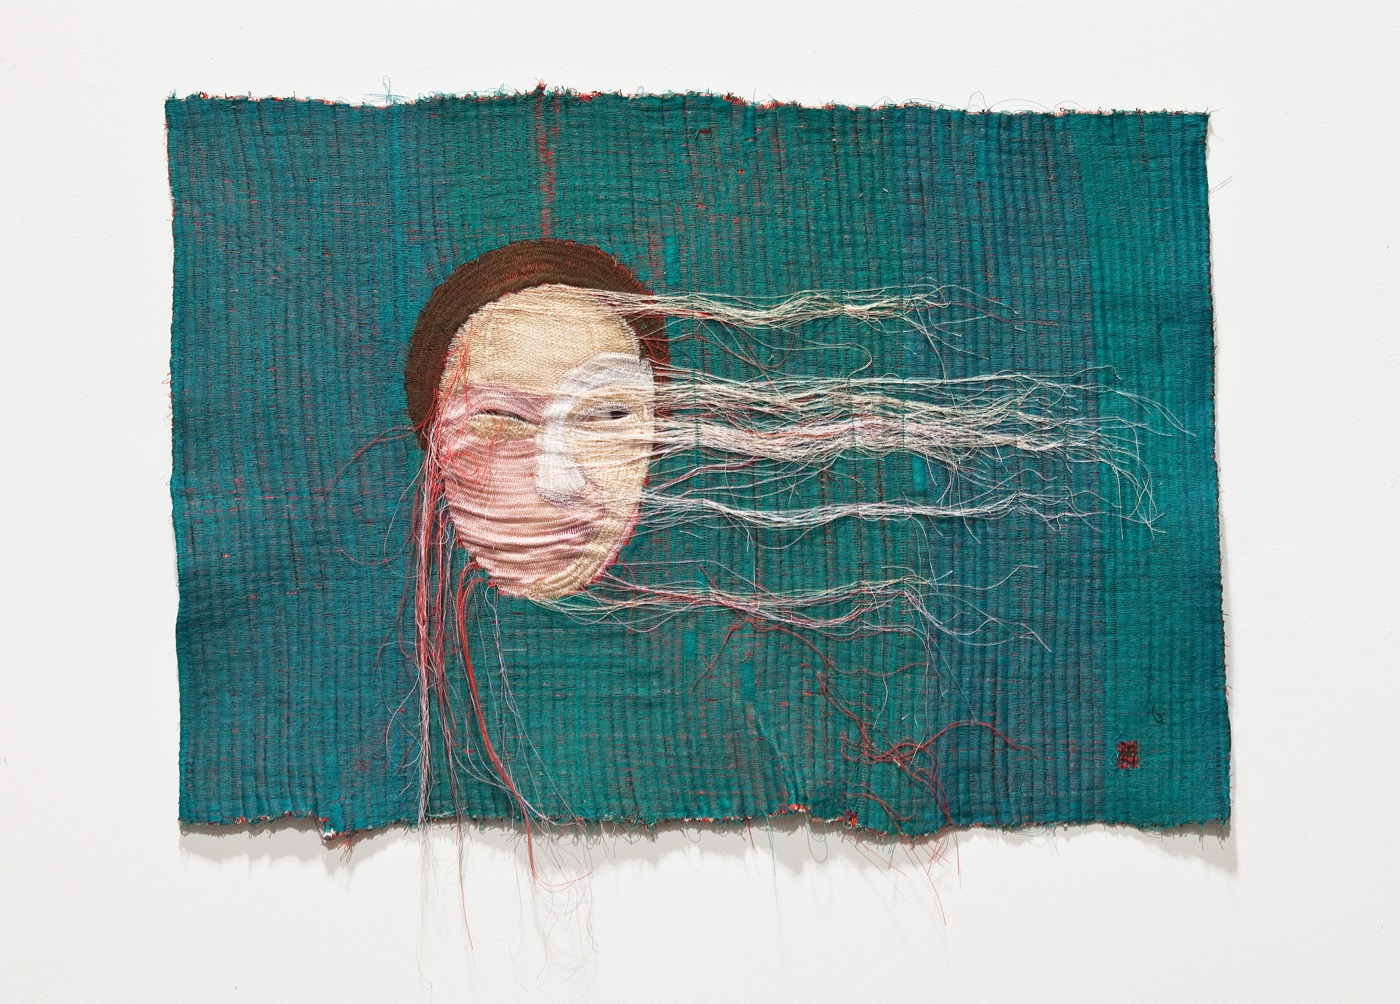 Yoon Ji Seon, Rag face #10, 2012 Sewing on fabric and photograph, 18 ½ x 26 7/16 in Courtesy the Artist andYossi Milo Gallery, New York